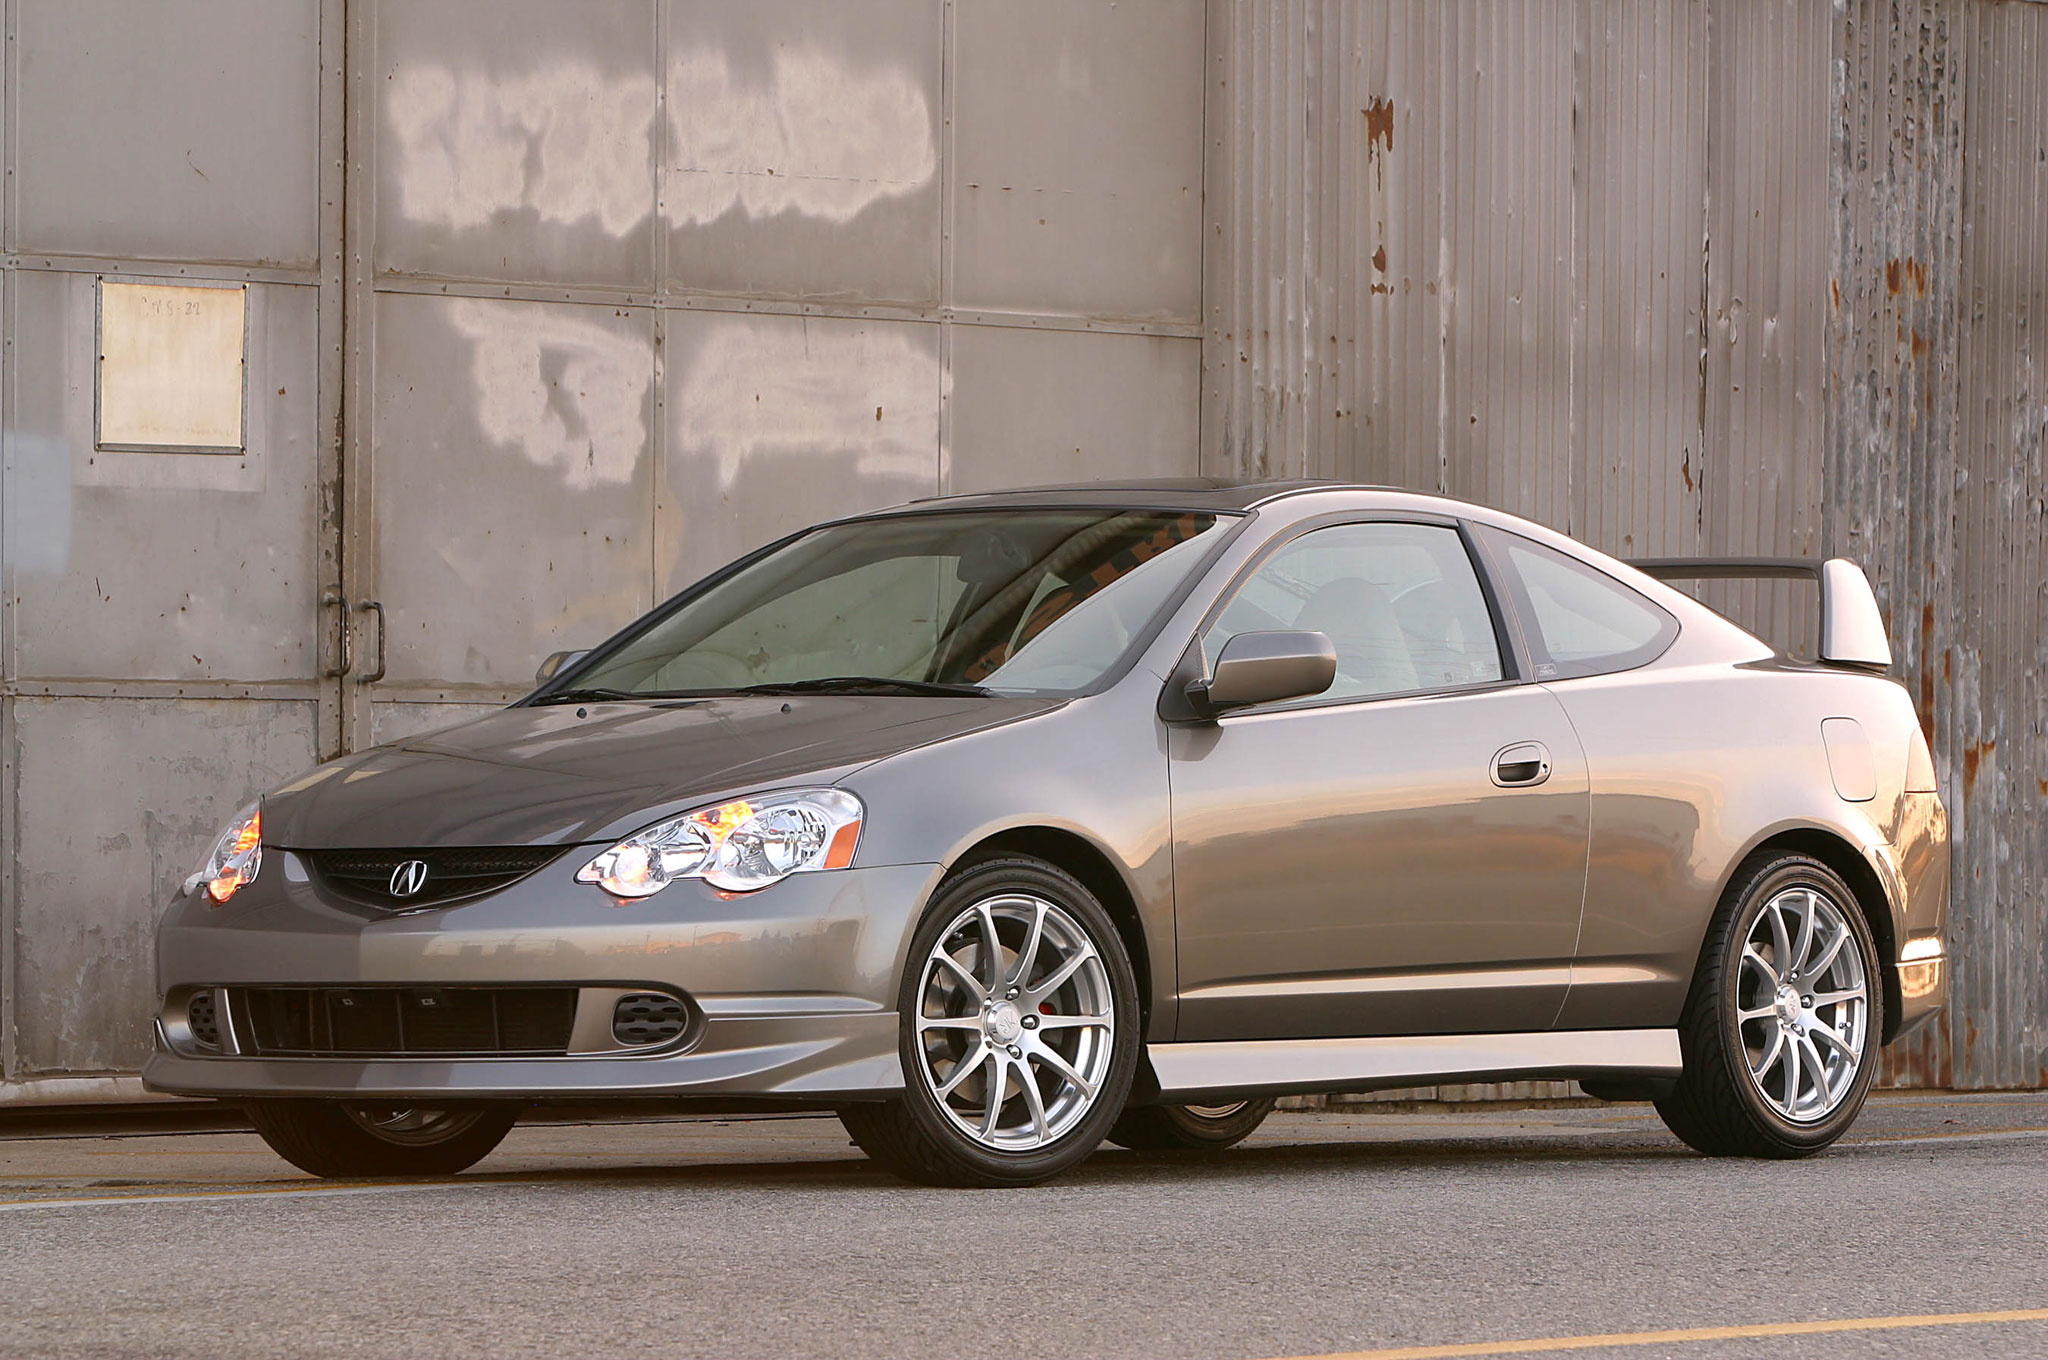 Acura RSX TypeS Four Seasons WrapUp - 2006 acura rsx type s wheels